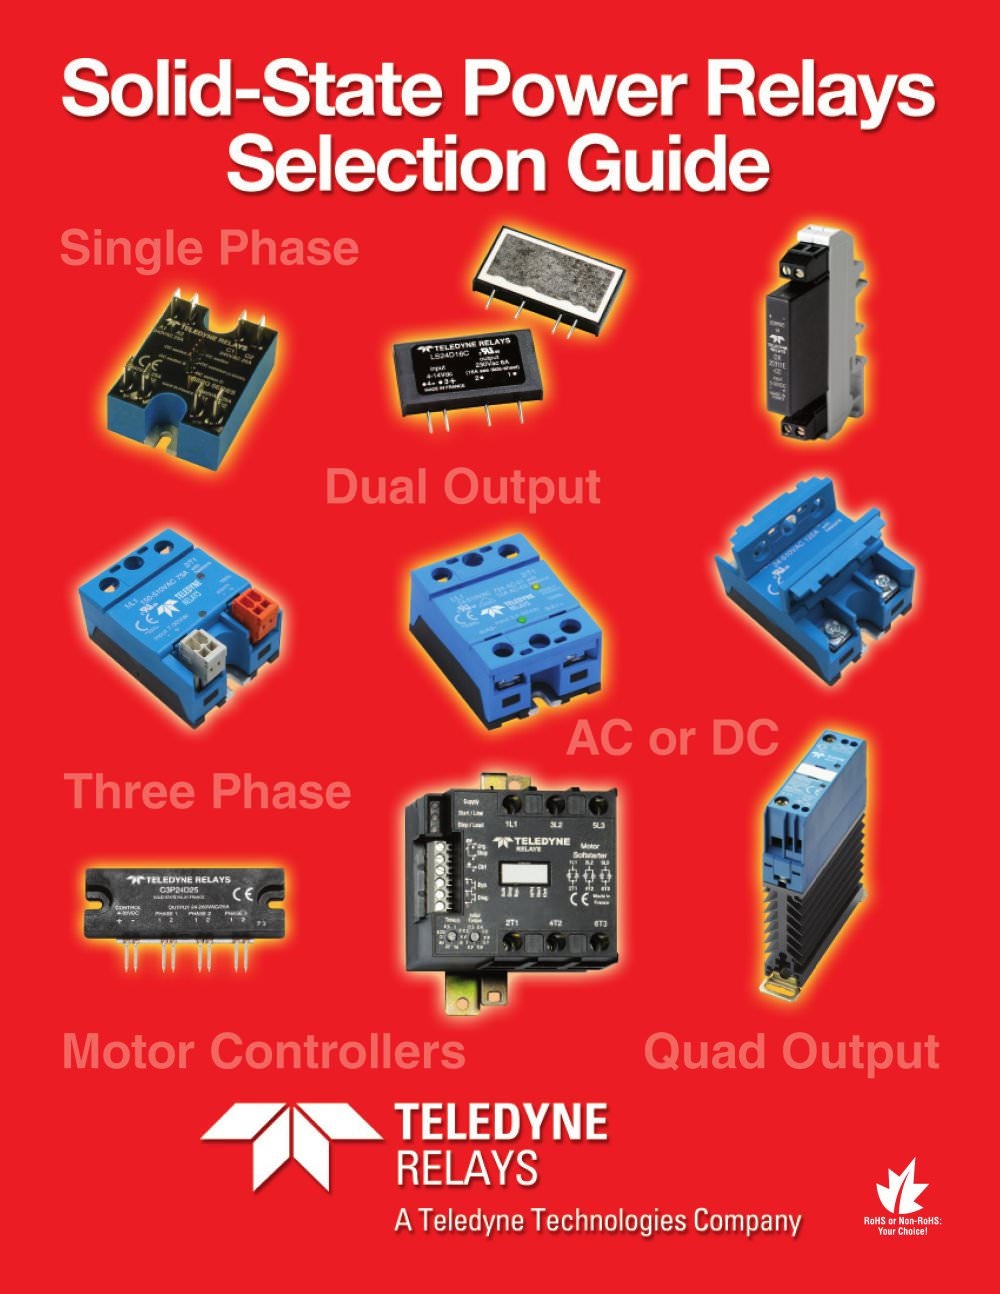 Teledyne Relays SolidState Power Relays Selection Guide